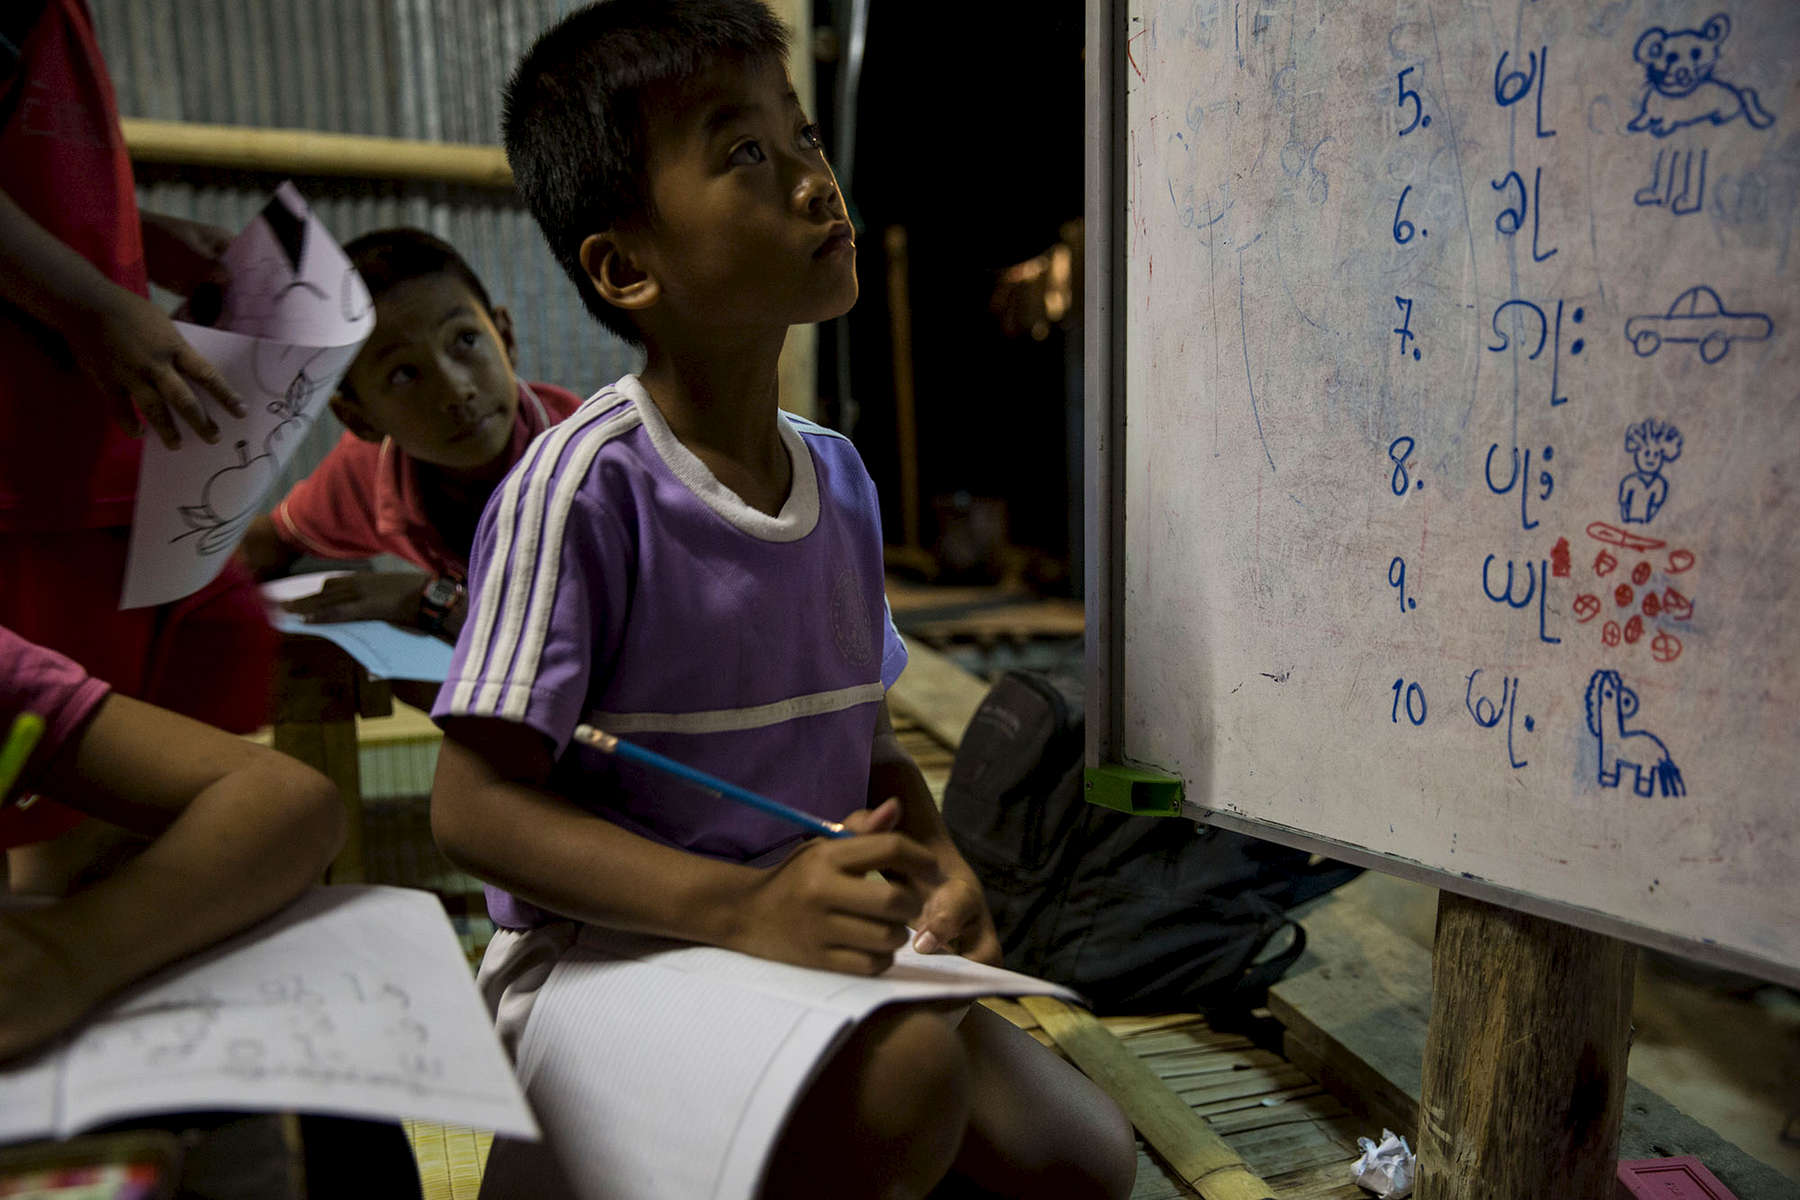 Many of the Shan children born in Thailand are at risk of losing their traditional customs and language. Here, Shan children study their native language in a makeshift night school run by NGO volunteers.